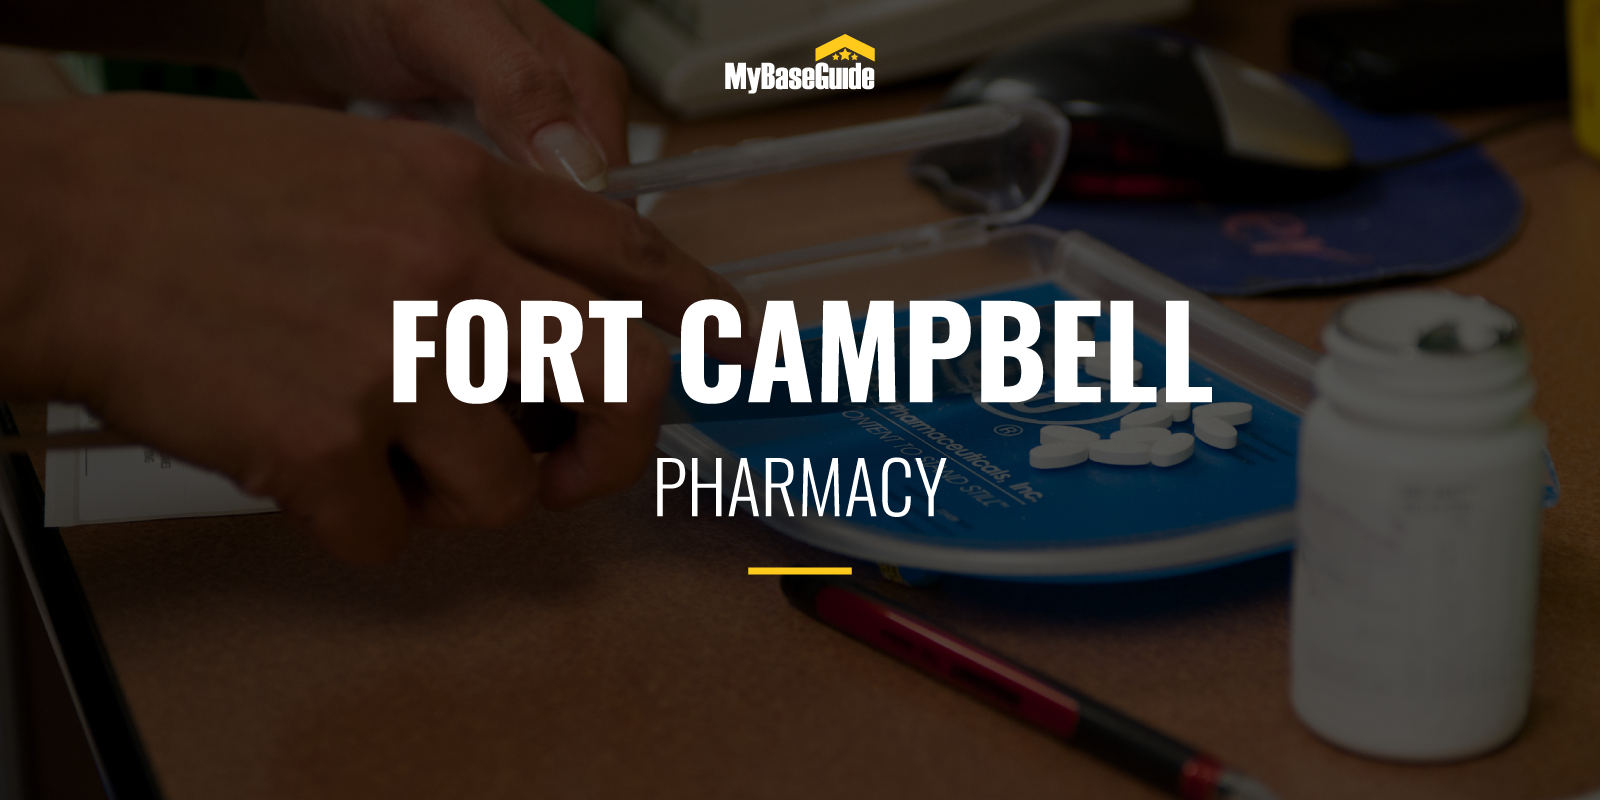 Fort Campbell Pharmacy Services